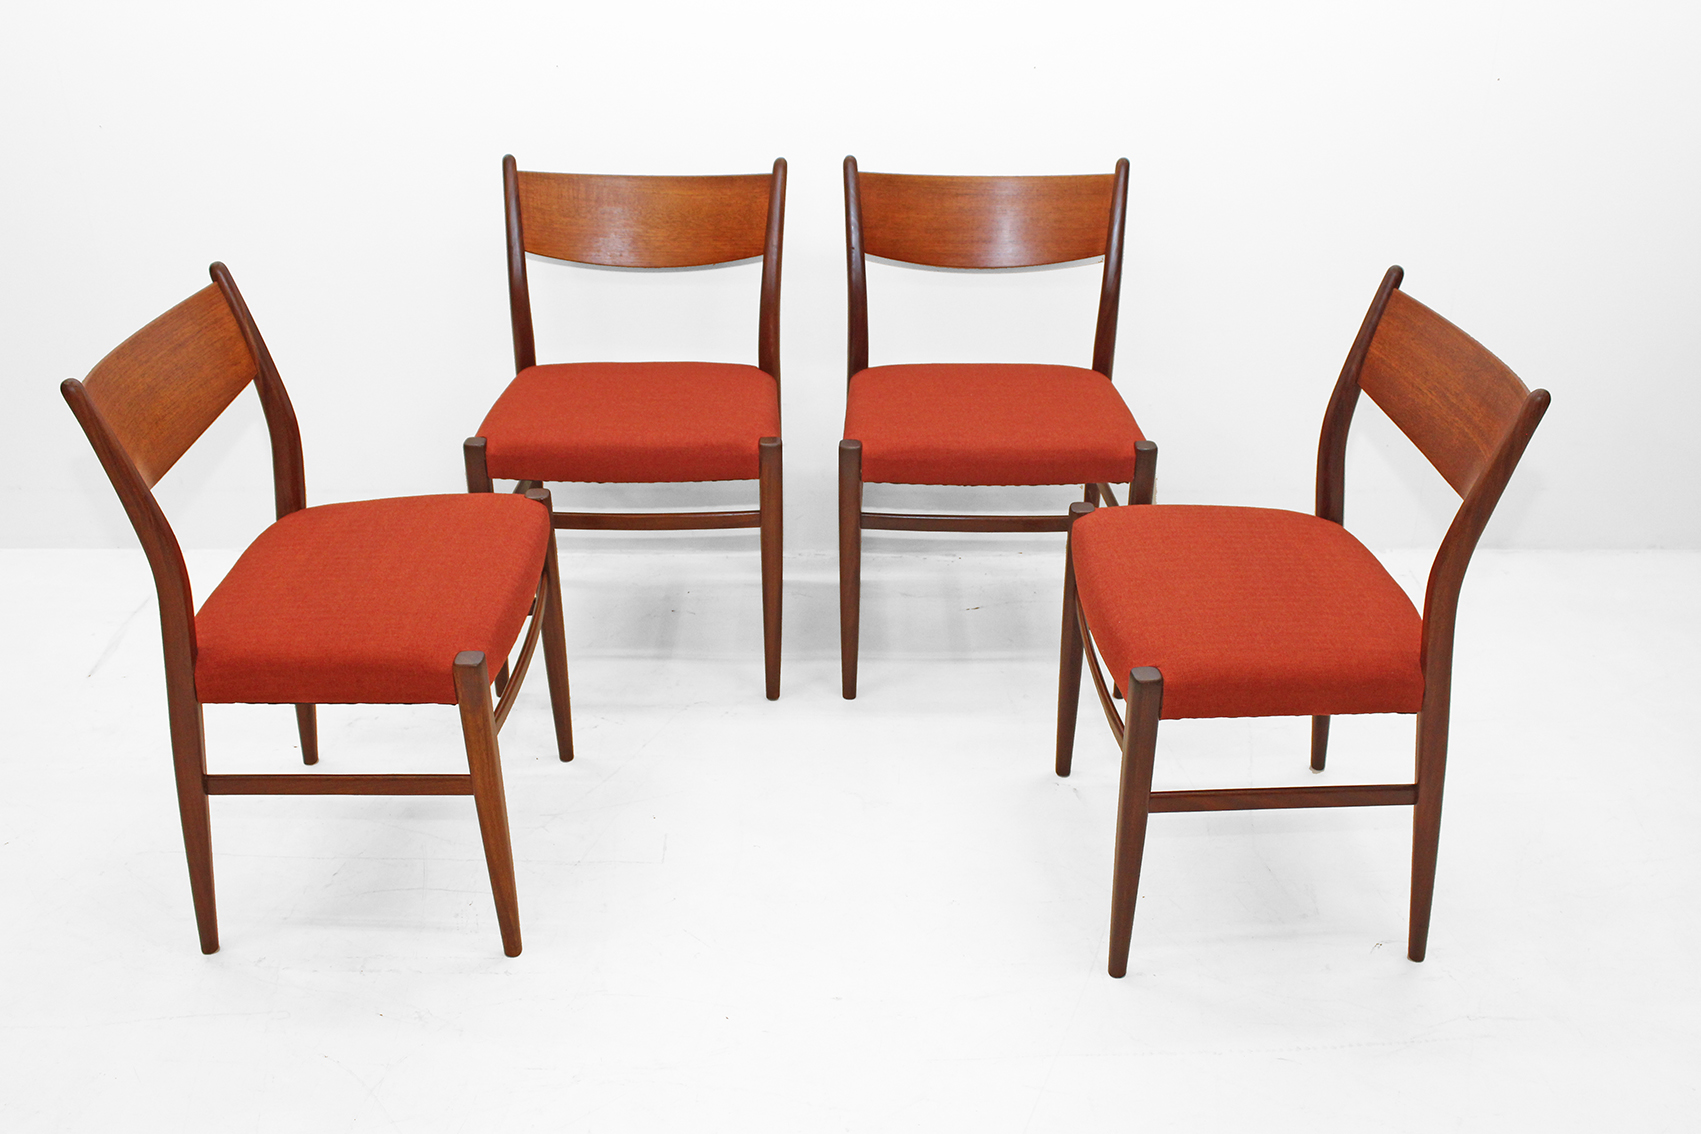 Set of 4 dining chairs by Pastoe